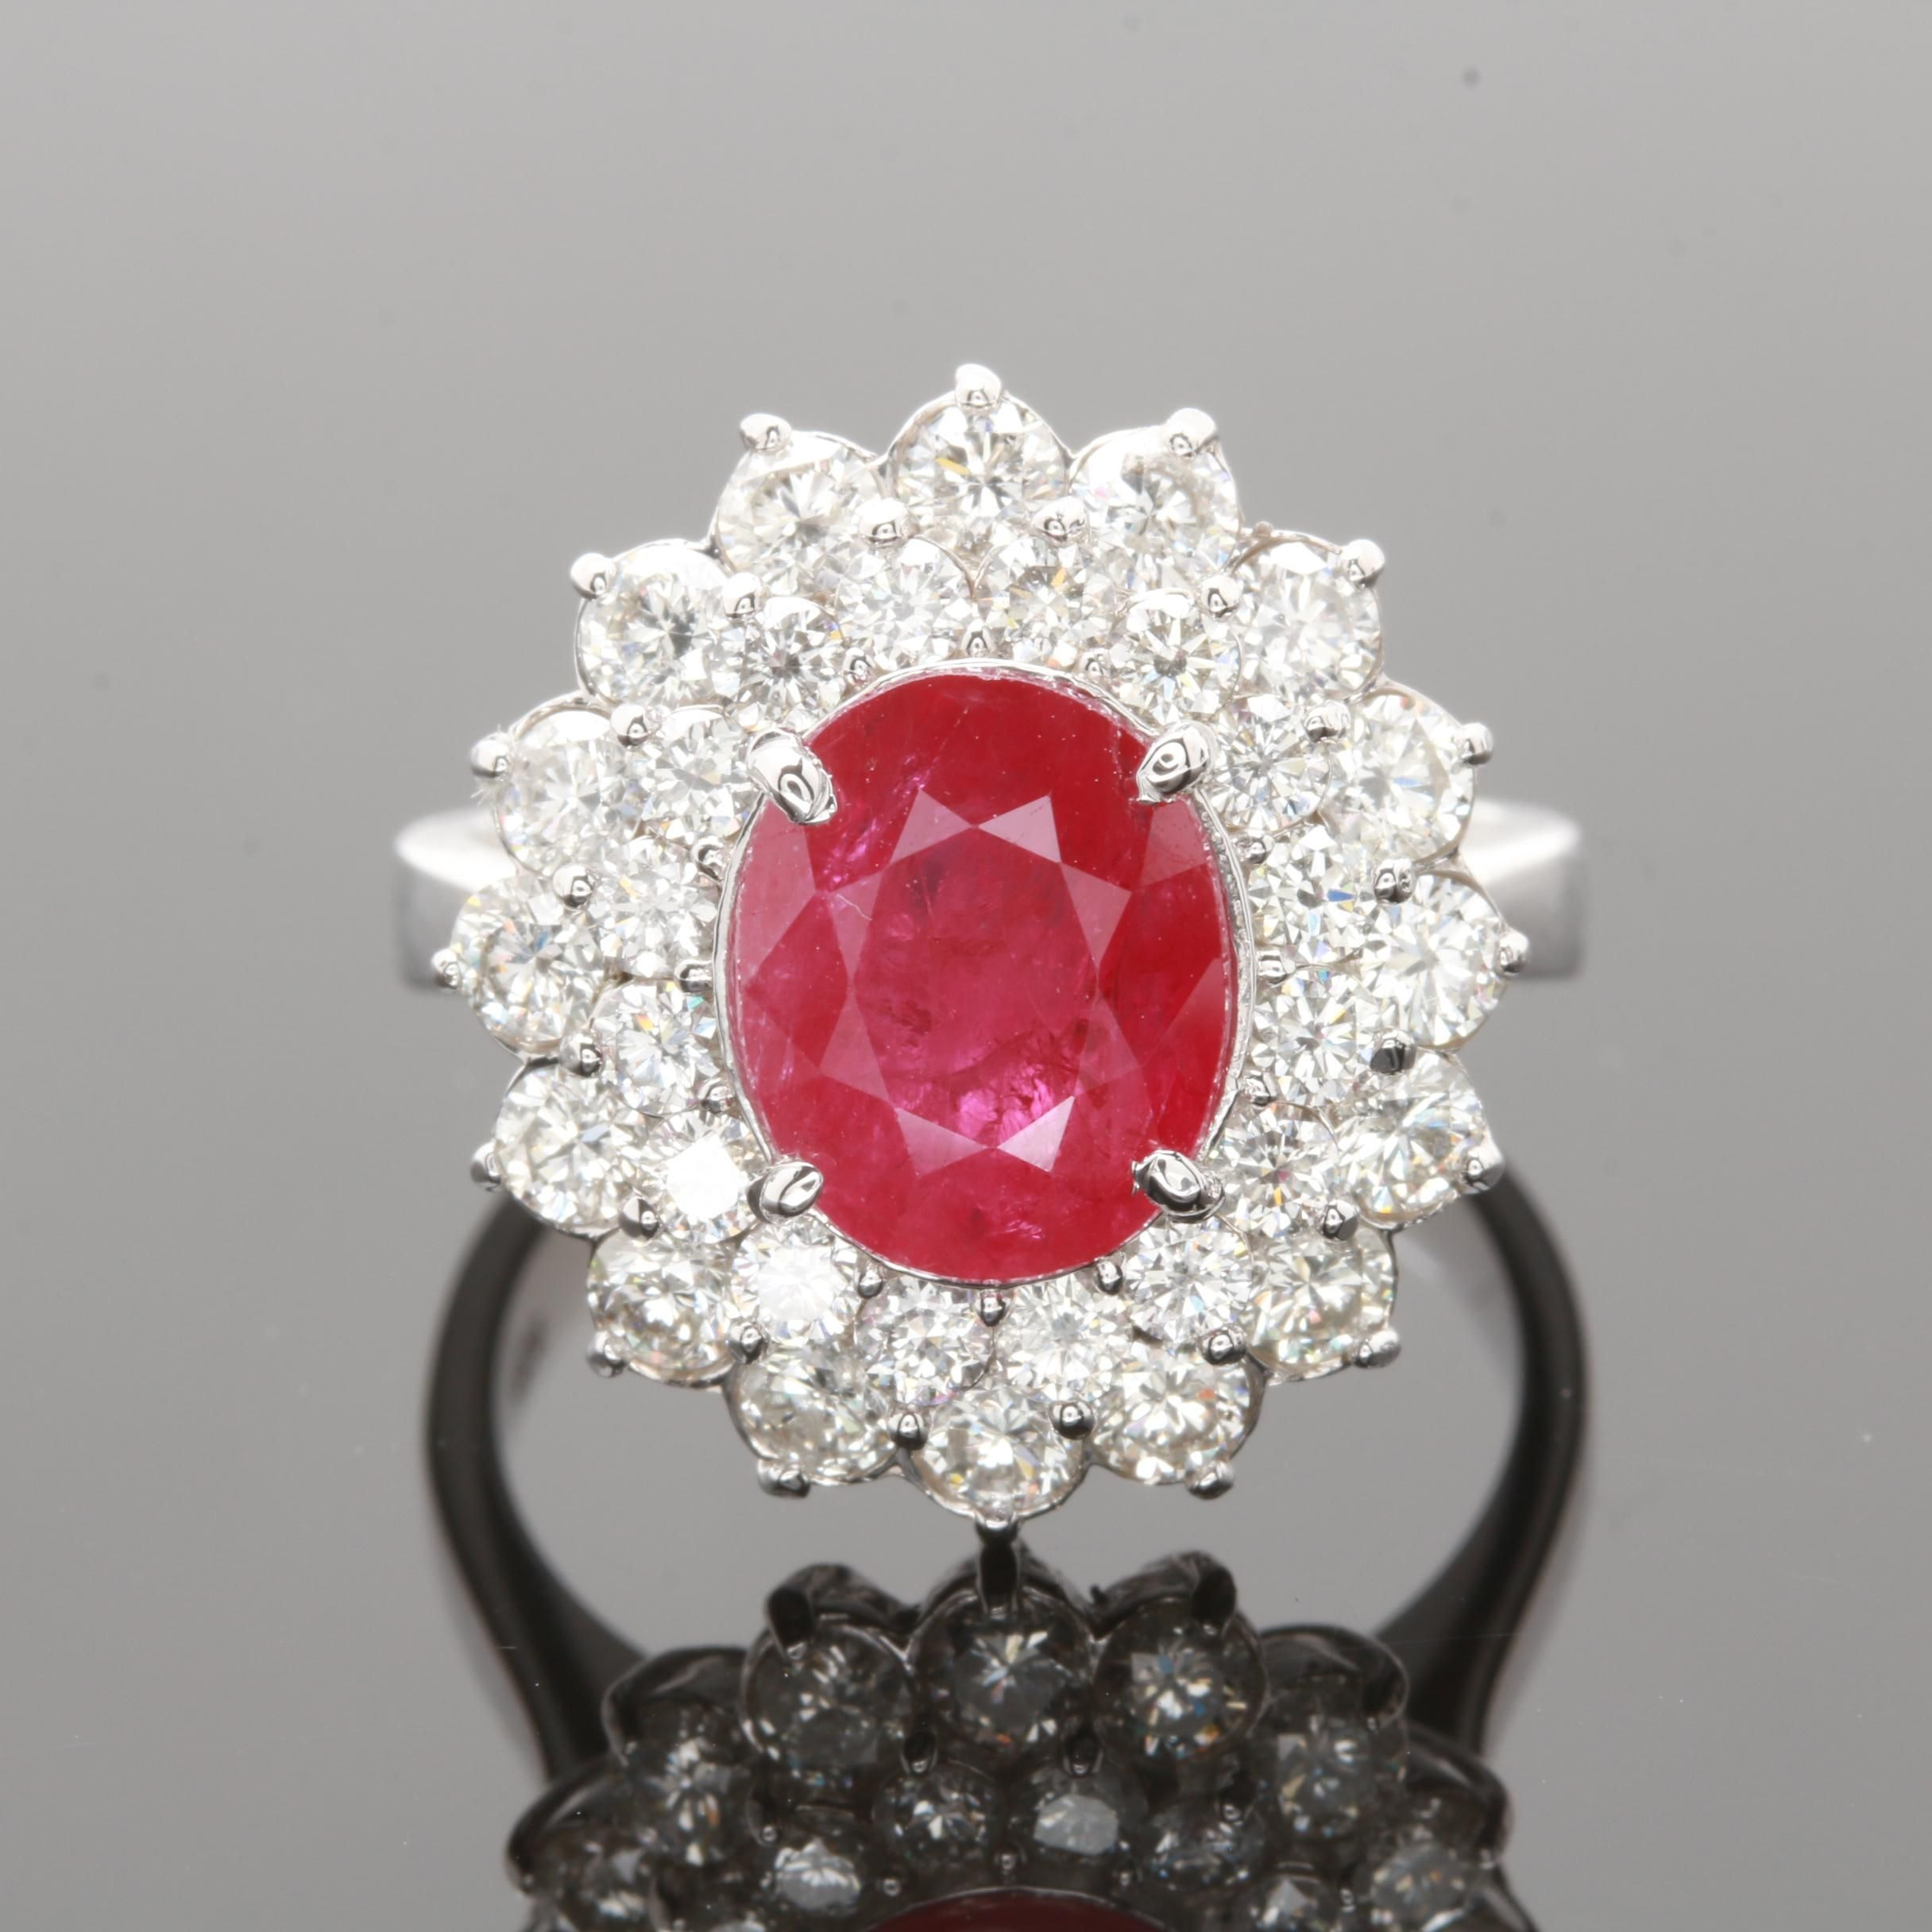 14K White Gold 2.55 CT Ruby and 1.76 CTW Diamond Ring